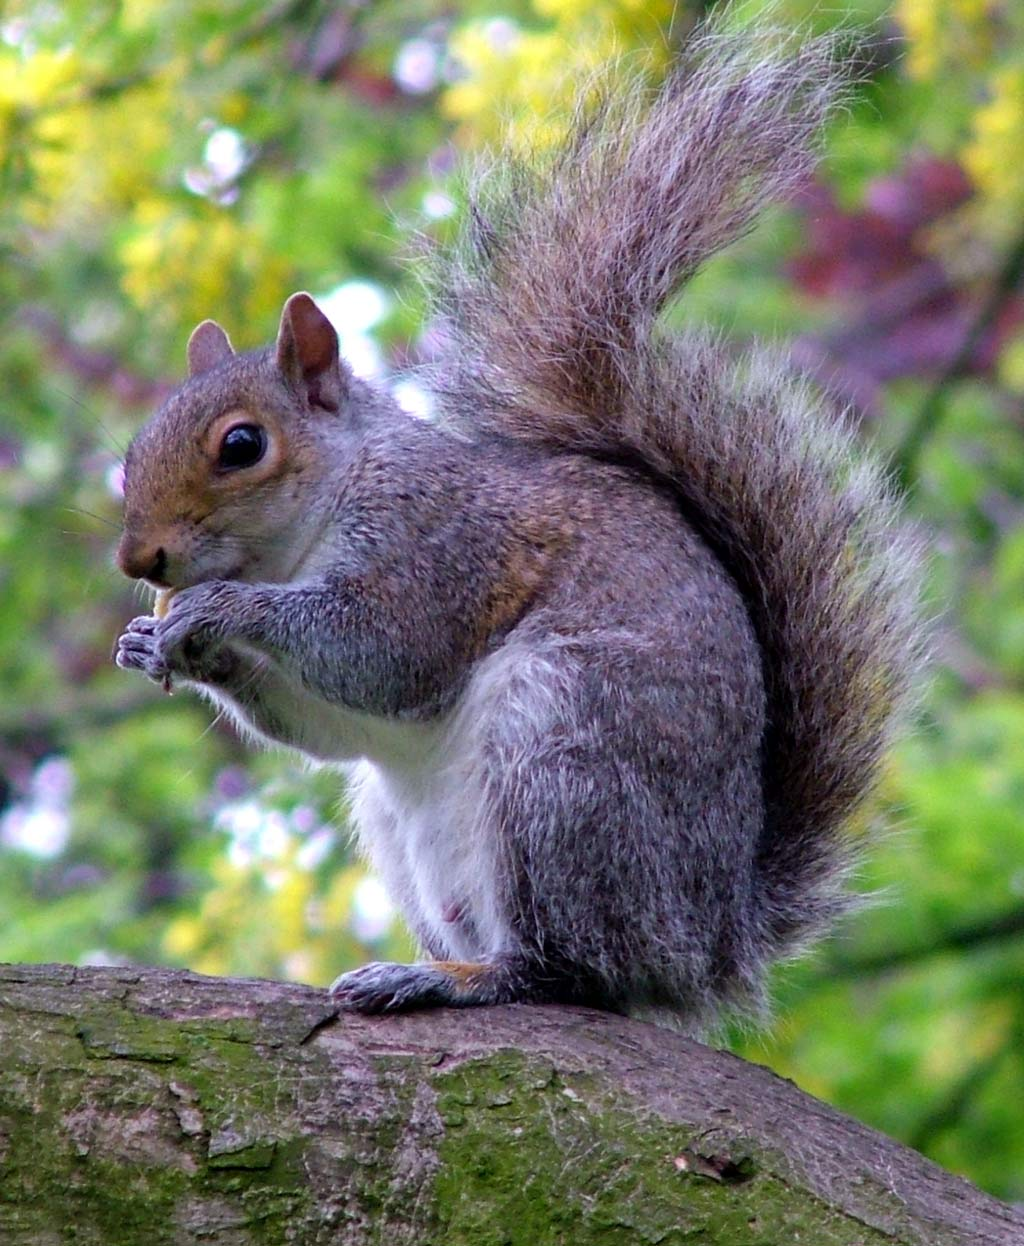 http://www.mooseyscountrygarden.com/english-gardens/grey-squirrel-eating.jpg